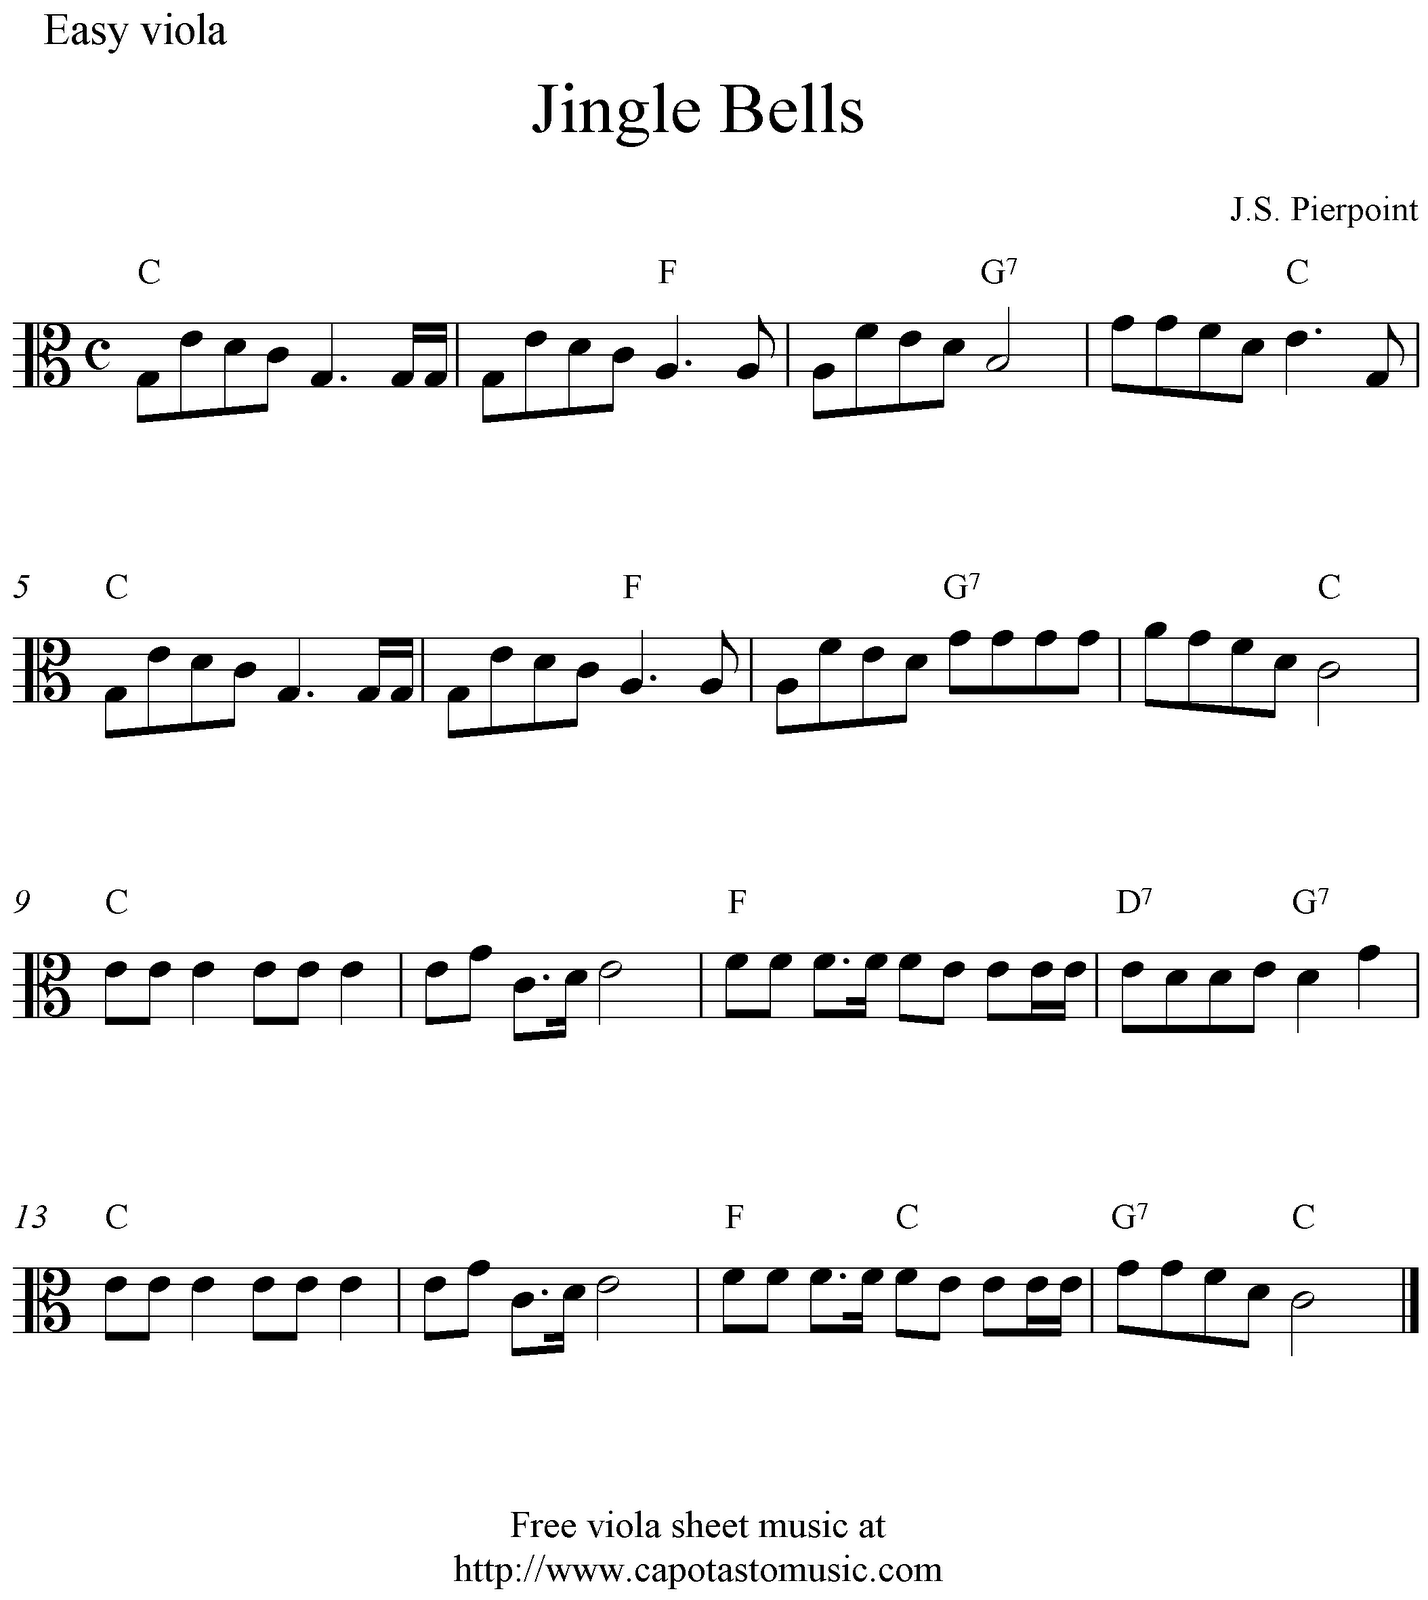 Free Christmas viola sheet music, Jingle Bells